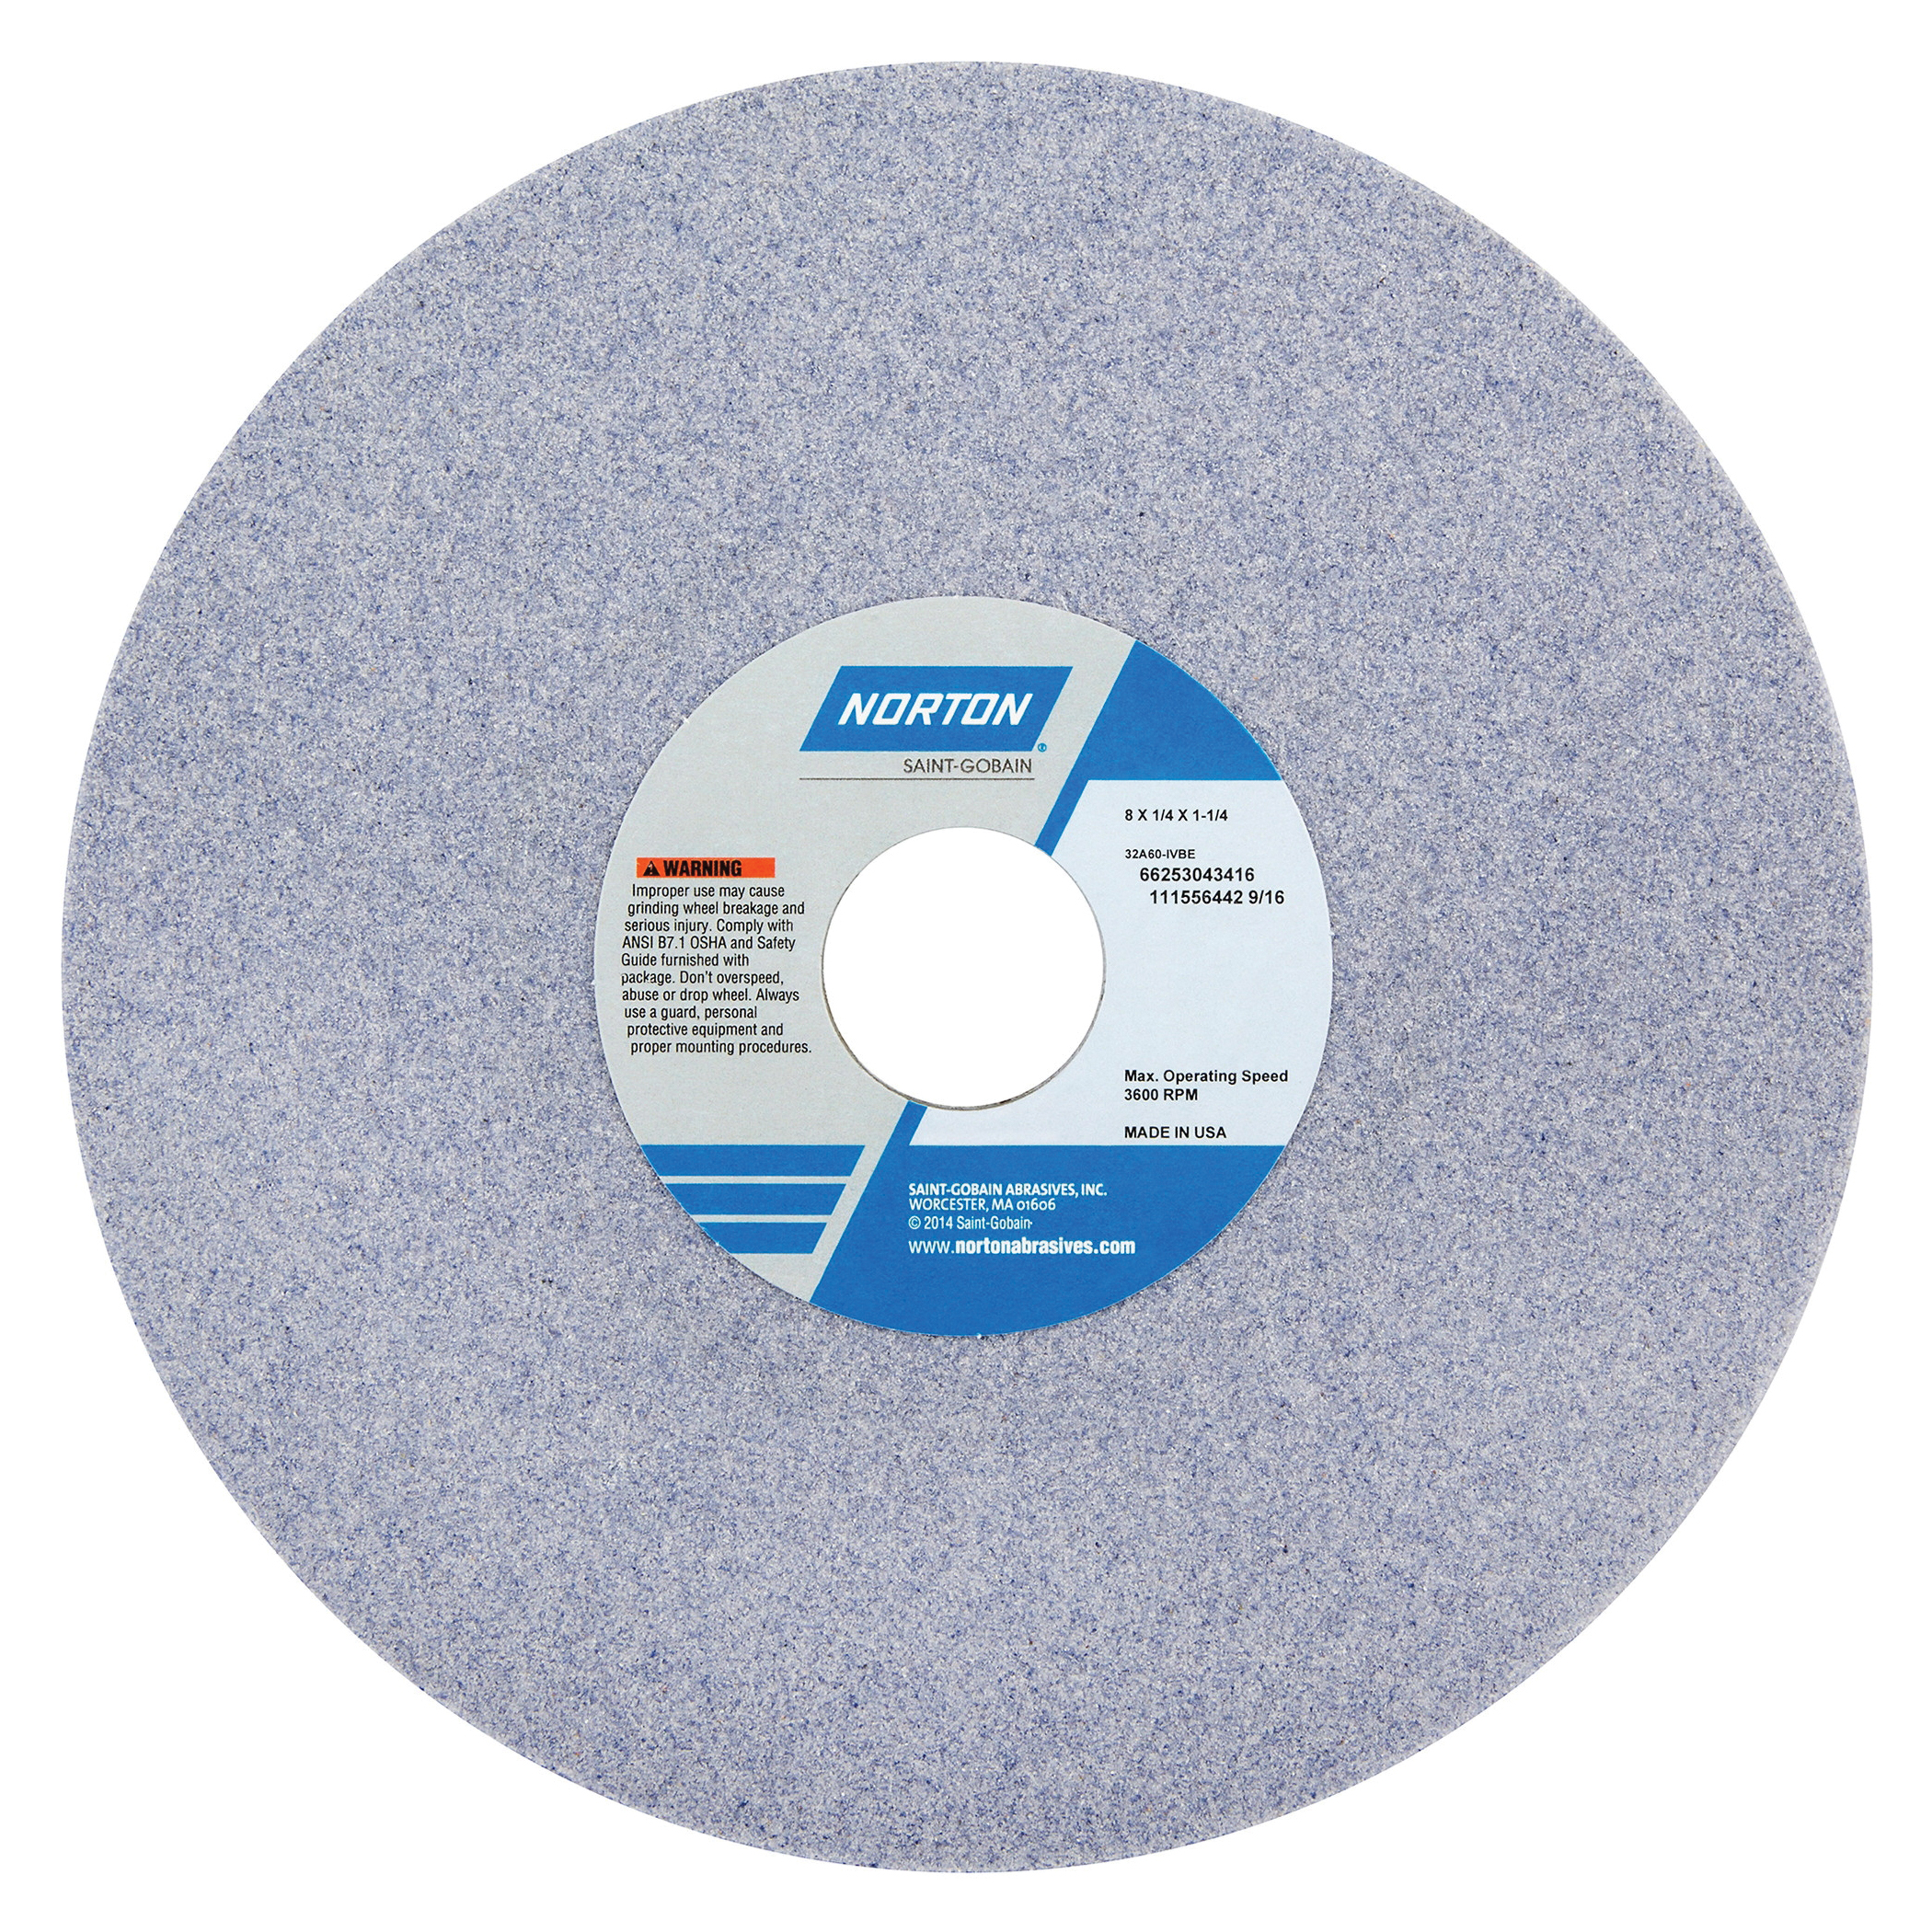 Norton® 66253043428 32A Straight Toolroom Wheel, 8 in Dia x 1/4 in THK, 1-1/4 in Center Hole, 100 Grit, Aluminum Oxide Abrasive